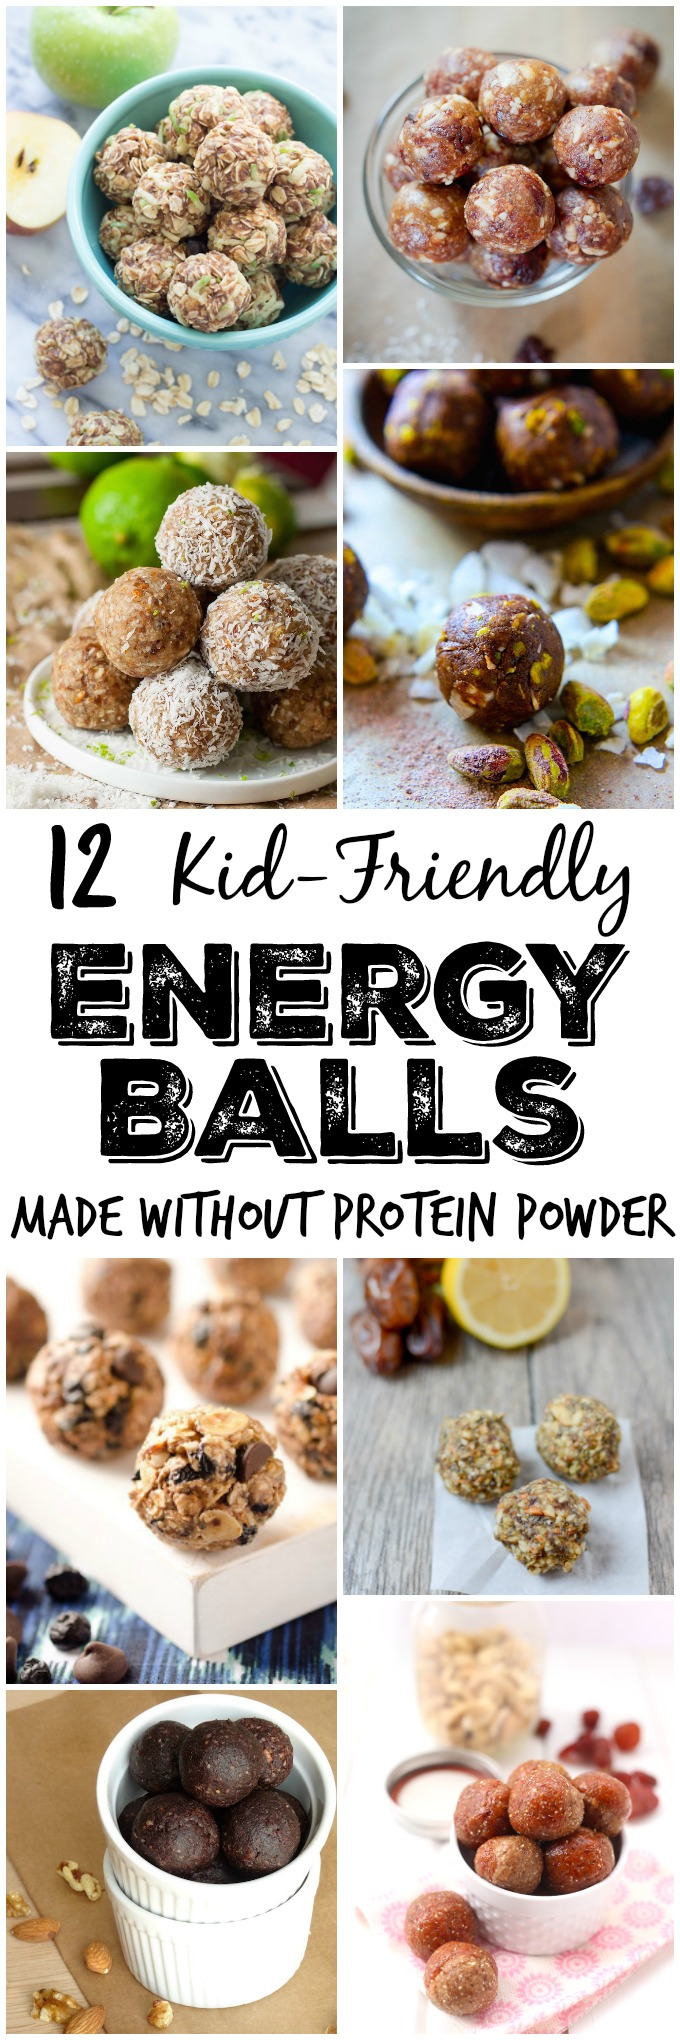 Looking for a quick, healthy snack made with real food ingredients? Here are 12 kid-friendly energy ball recipes made without